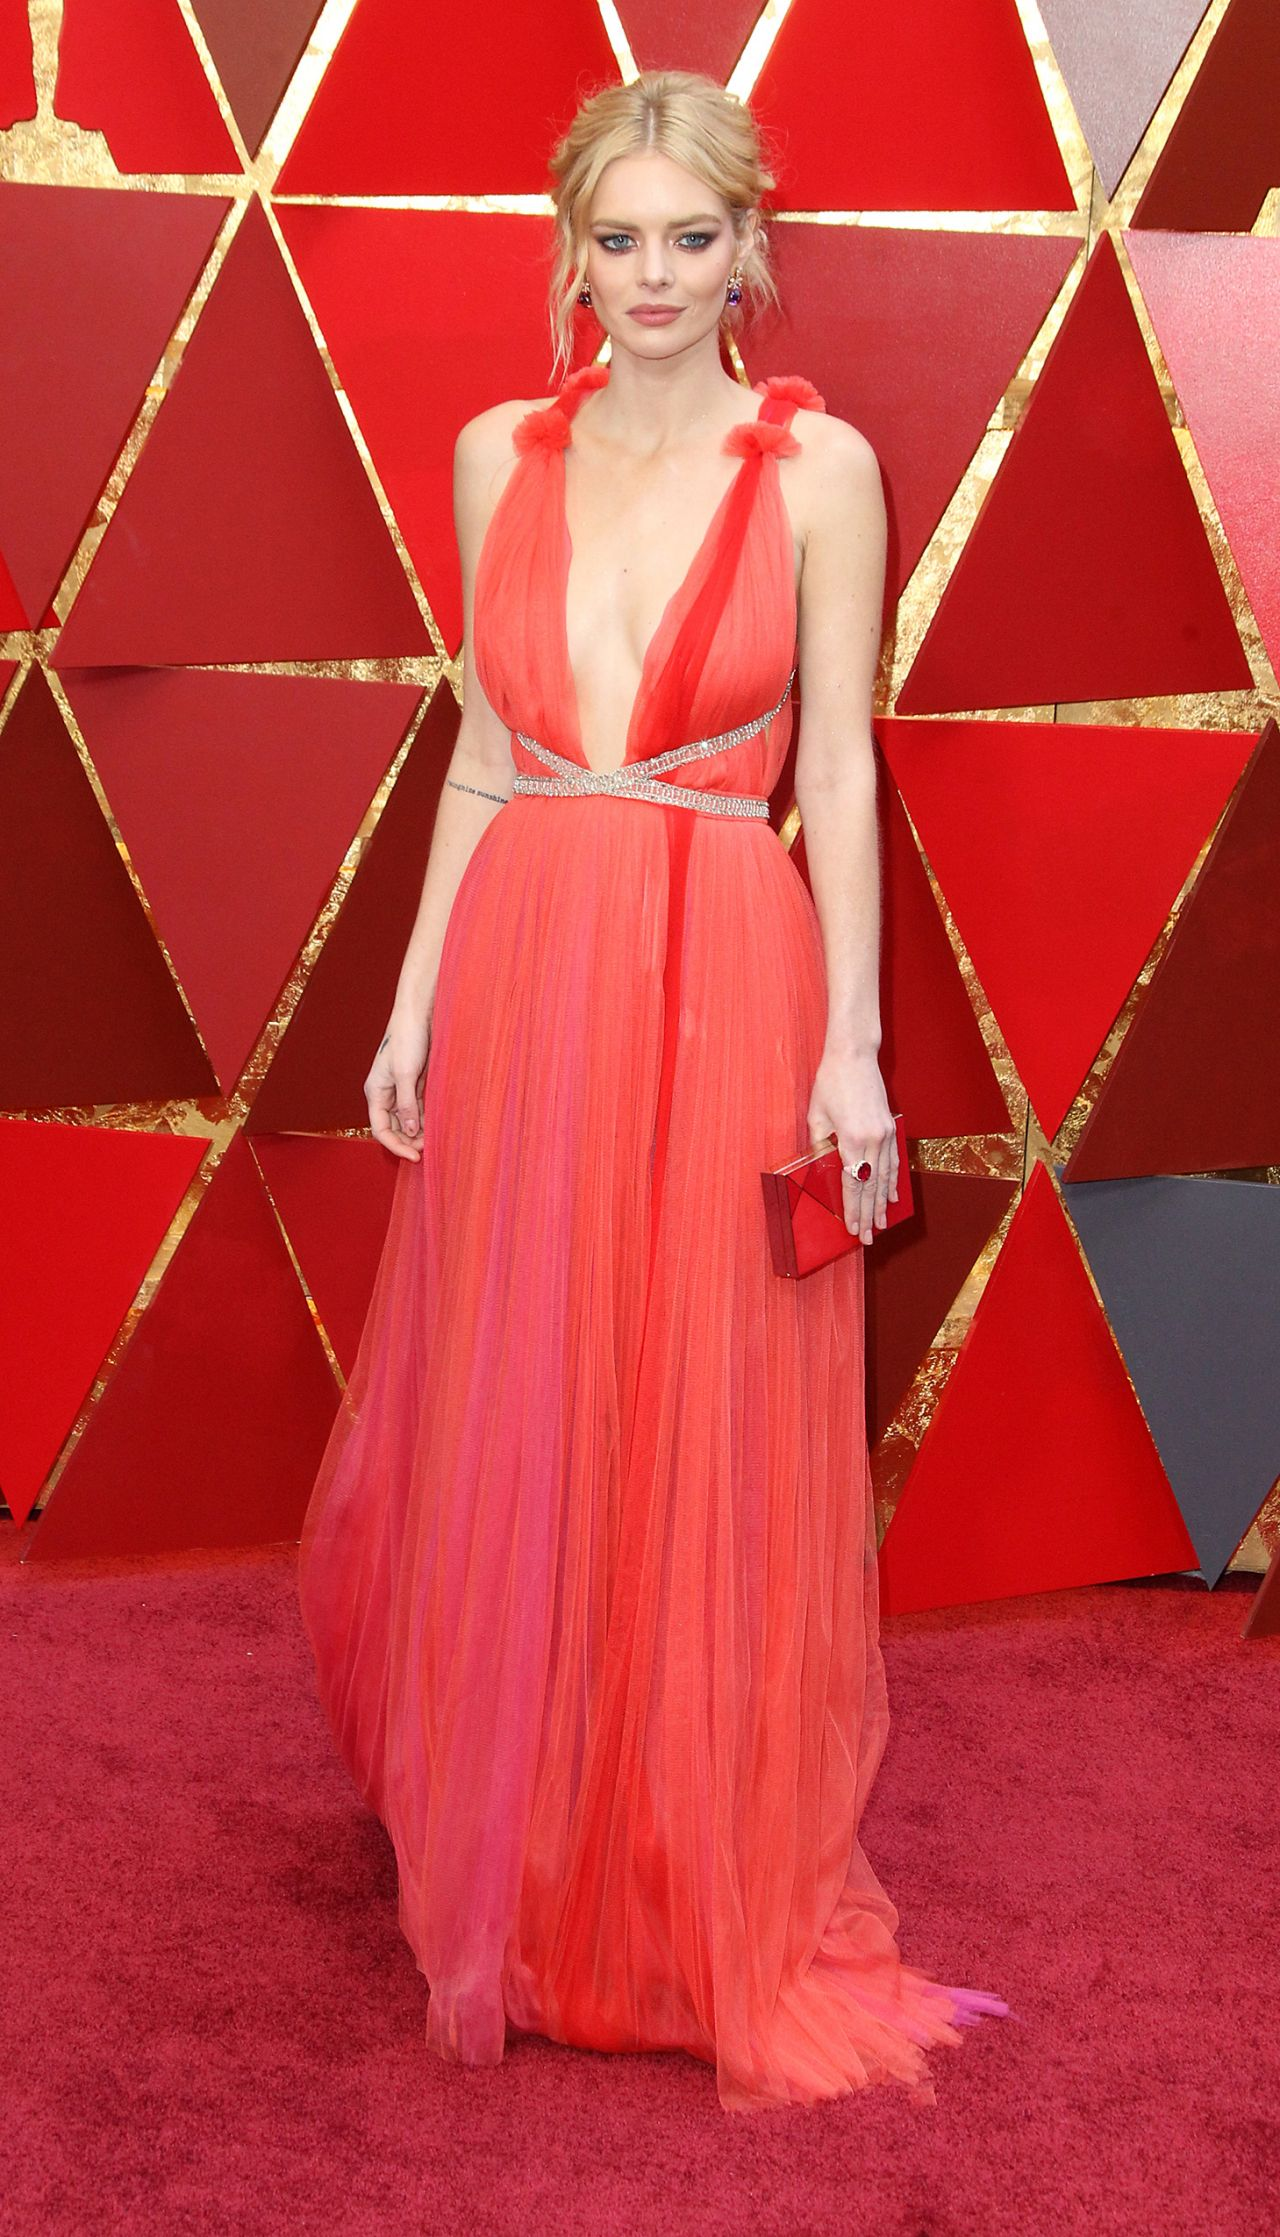 Samara Weaving Oscars 2018 Red Carpet